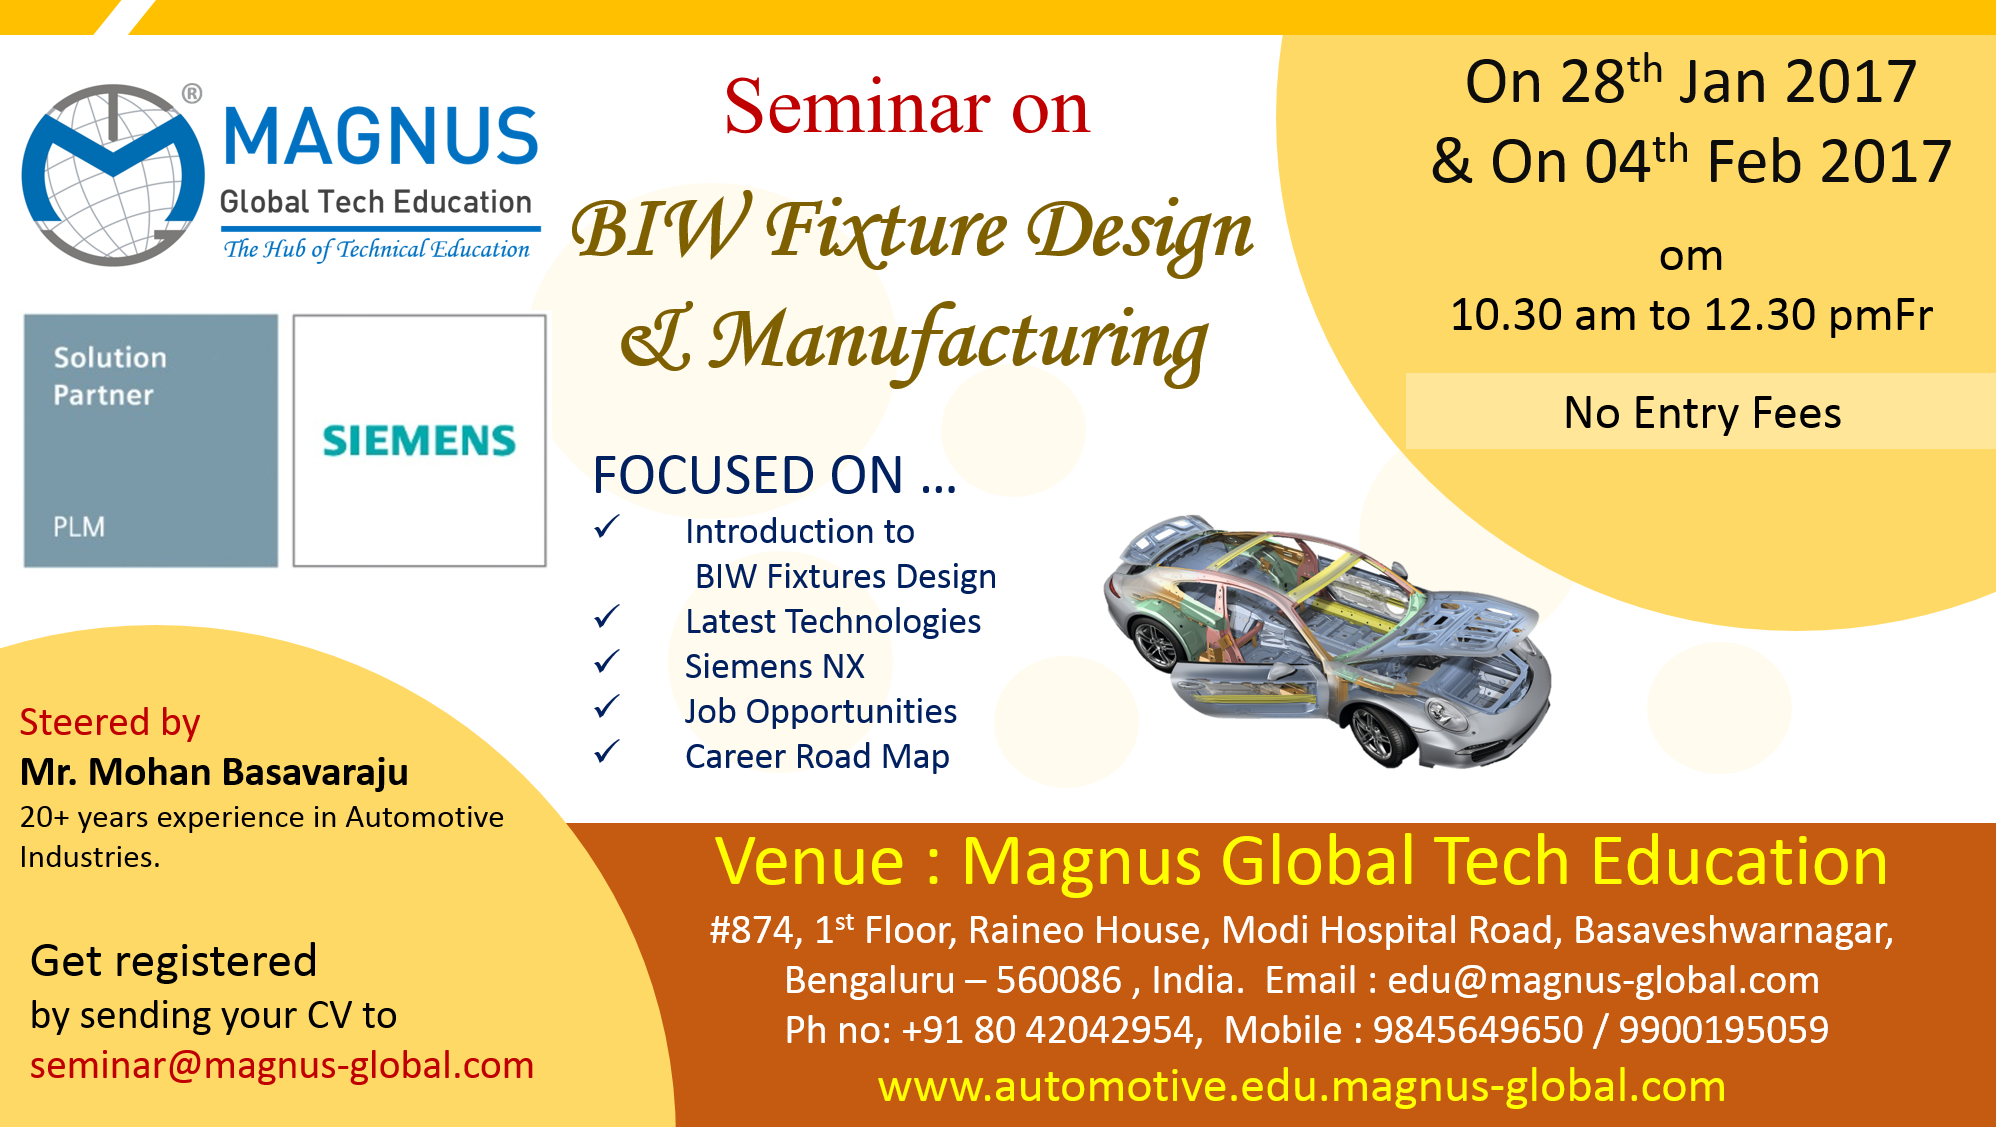 Seminar On BIW Fixture Design & Manufacturing